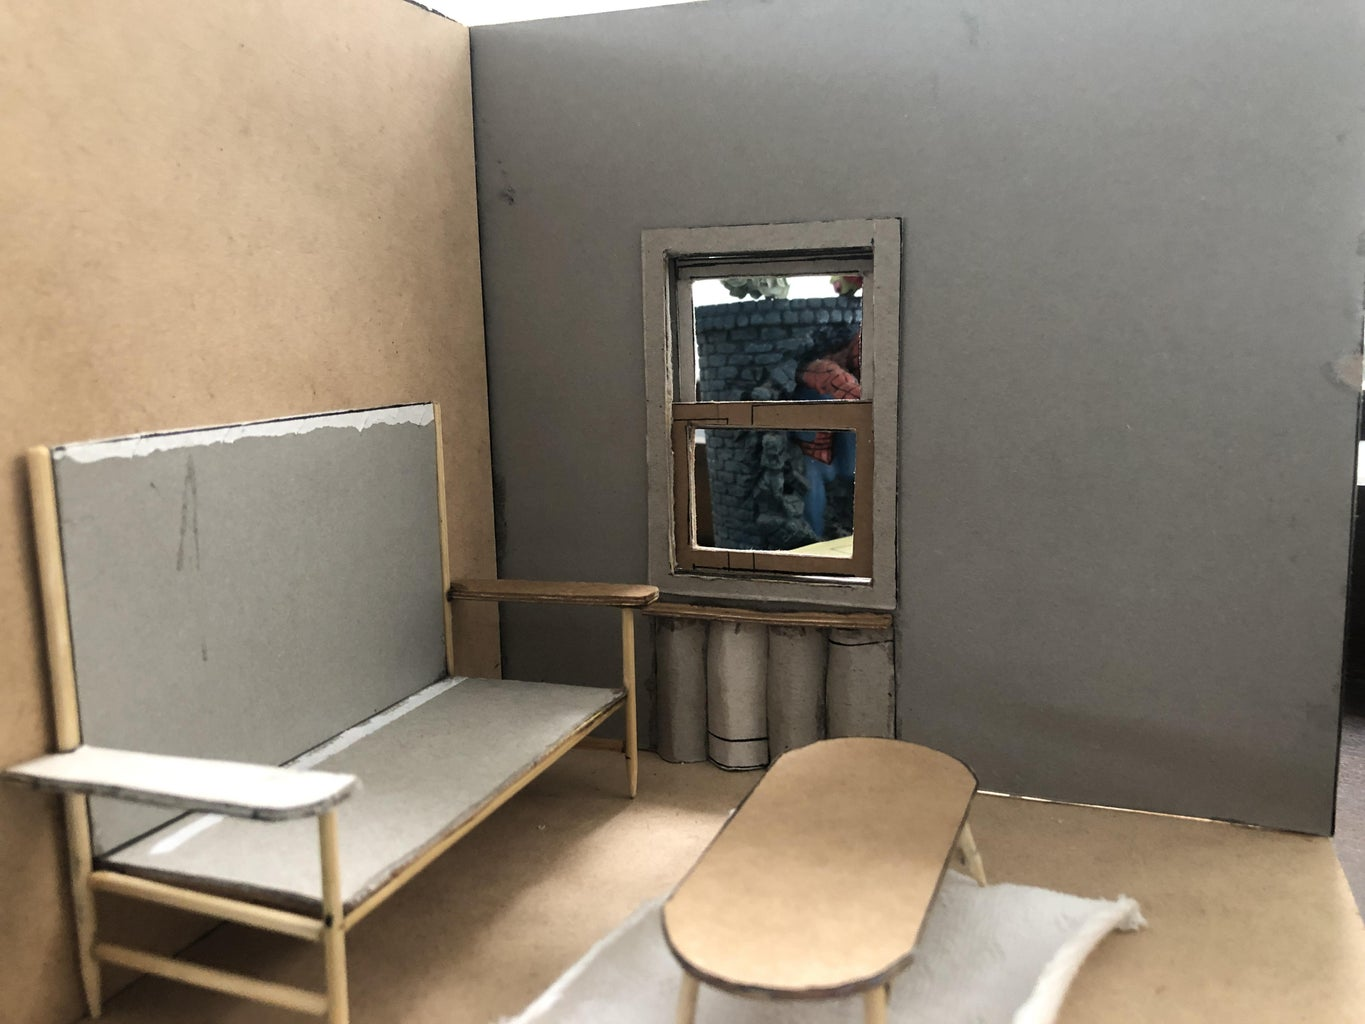 The Room (Walls and Floor)